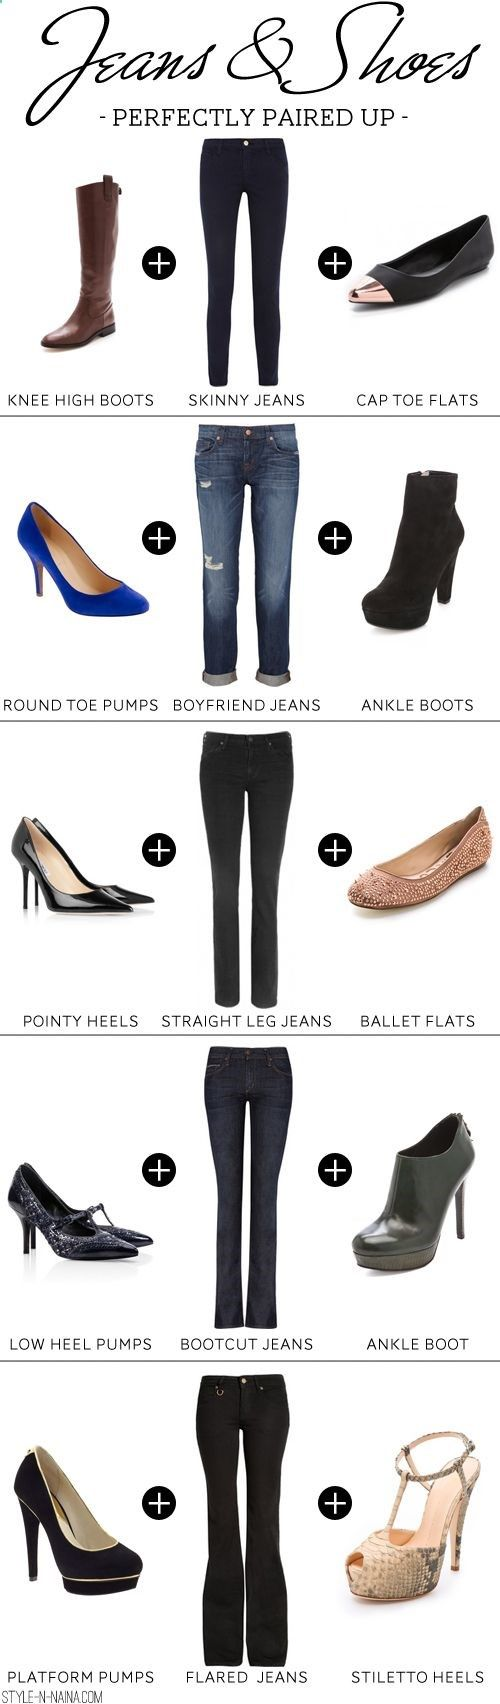 Jeans Shoes Guide - Perfectly Paired Up good to know: